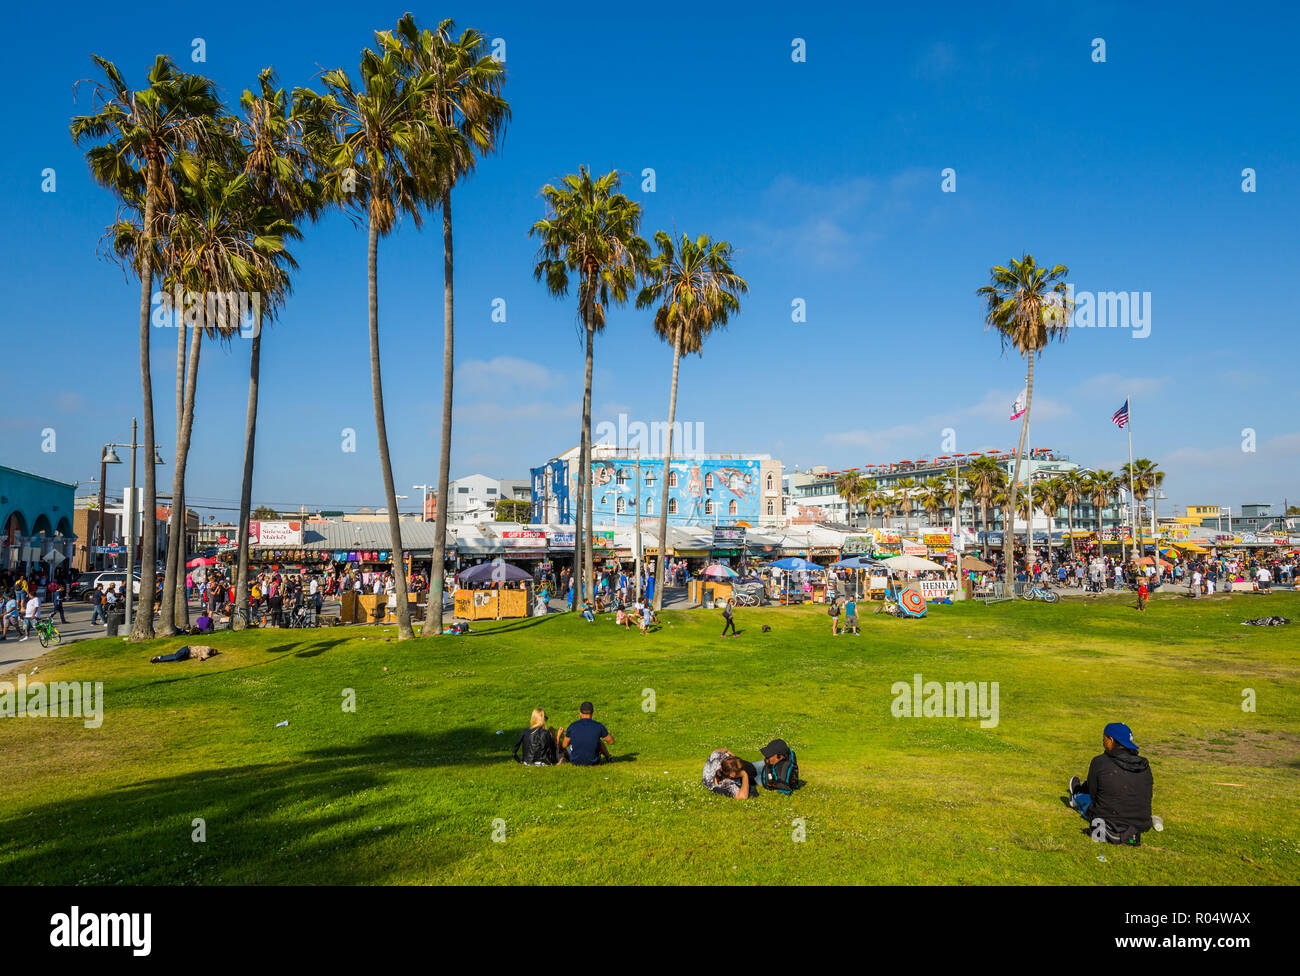 View of palm trees and visitors on Ocean Front Walk in Venice Beach, Los Angeles, California, United States of America, North America Stock Photo